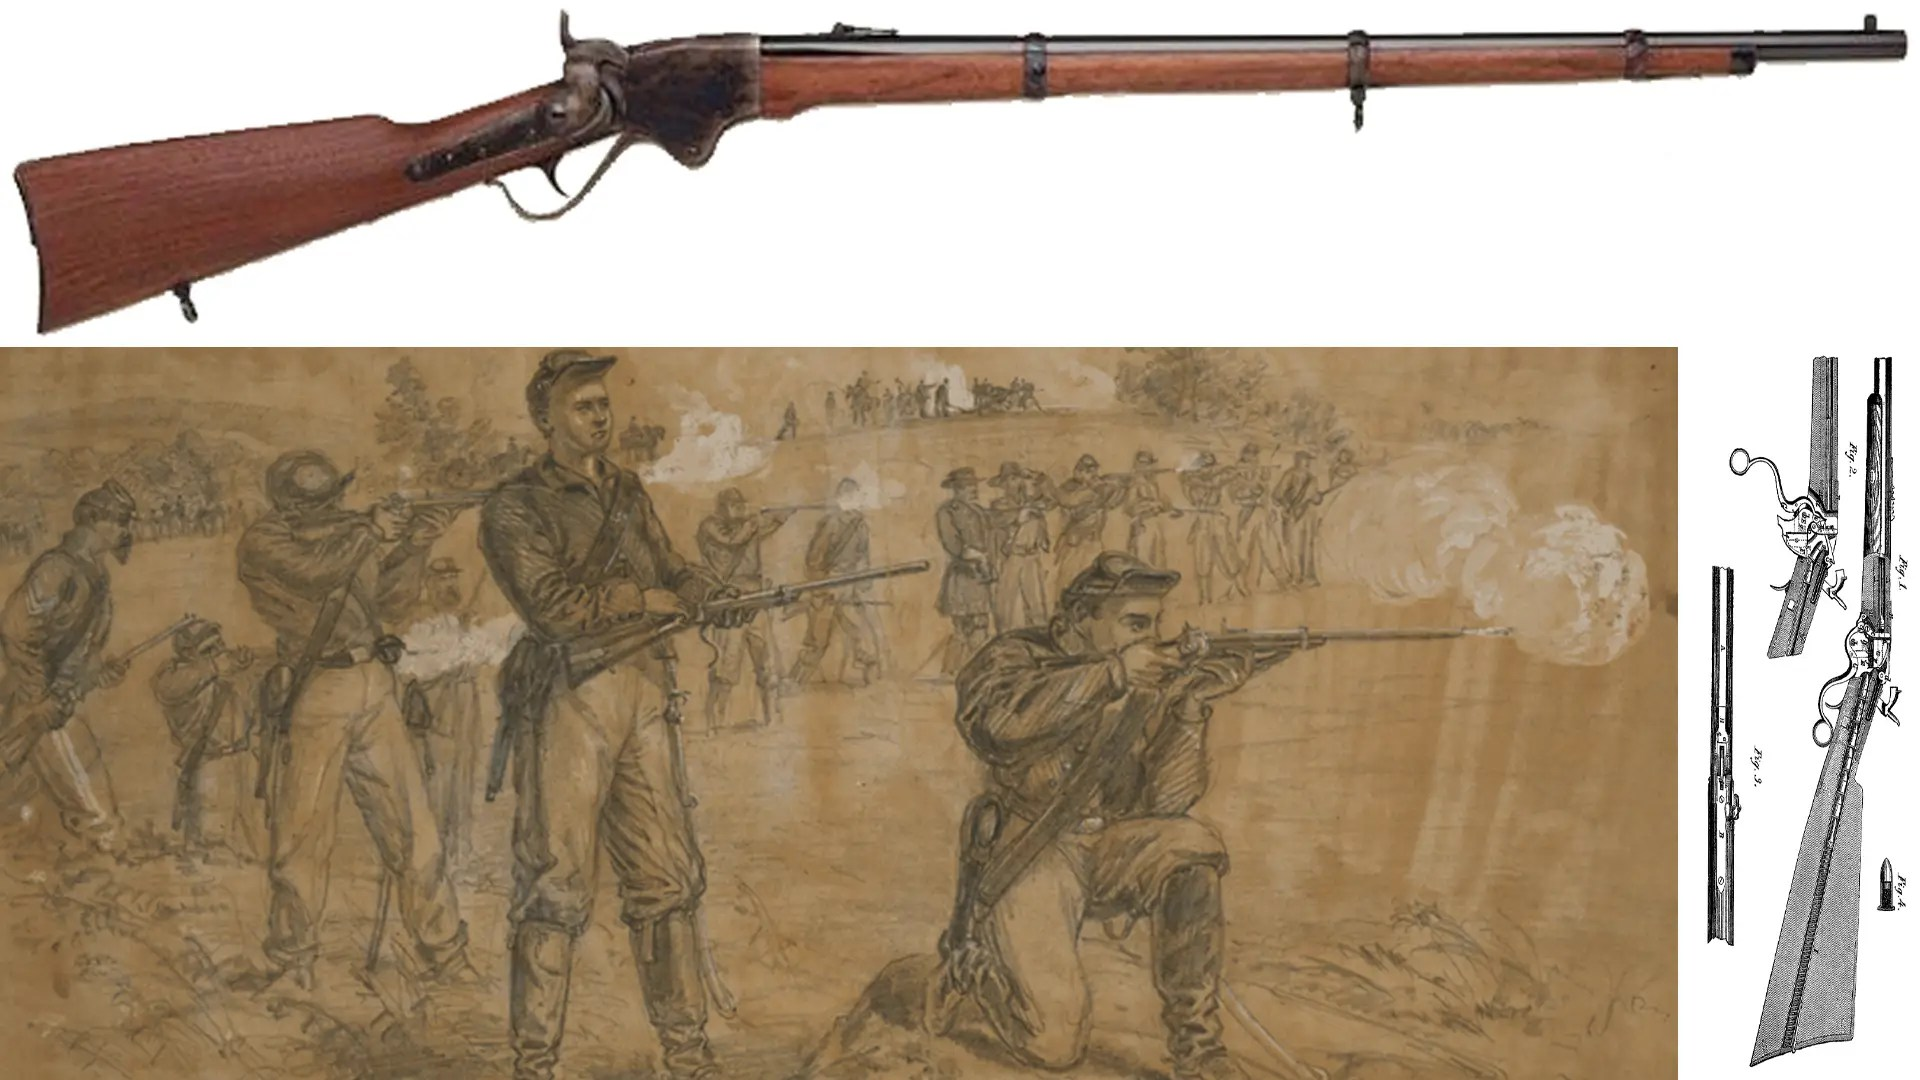 The Spencer Repeating Rifle — while most of the soldiers in the Civil War went to battle with muskets, this rifle enabled Union troops to fire as many as 20 rounds per minute.